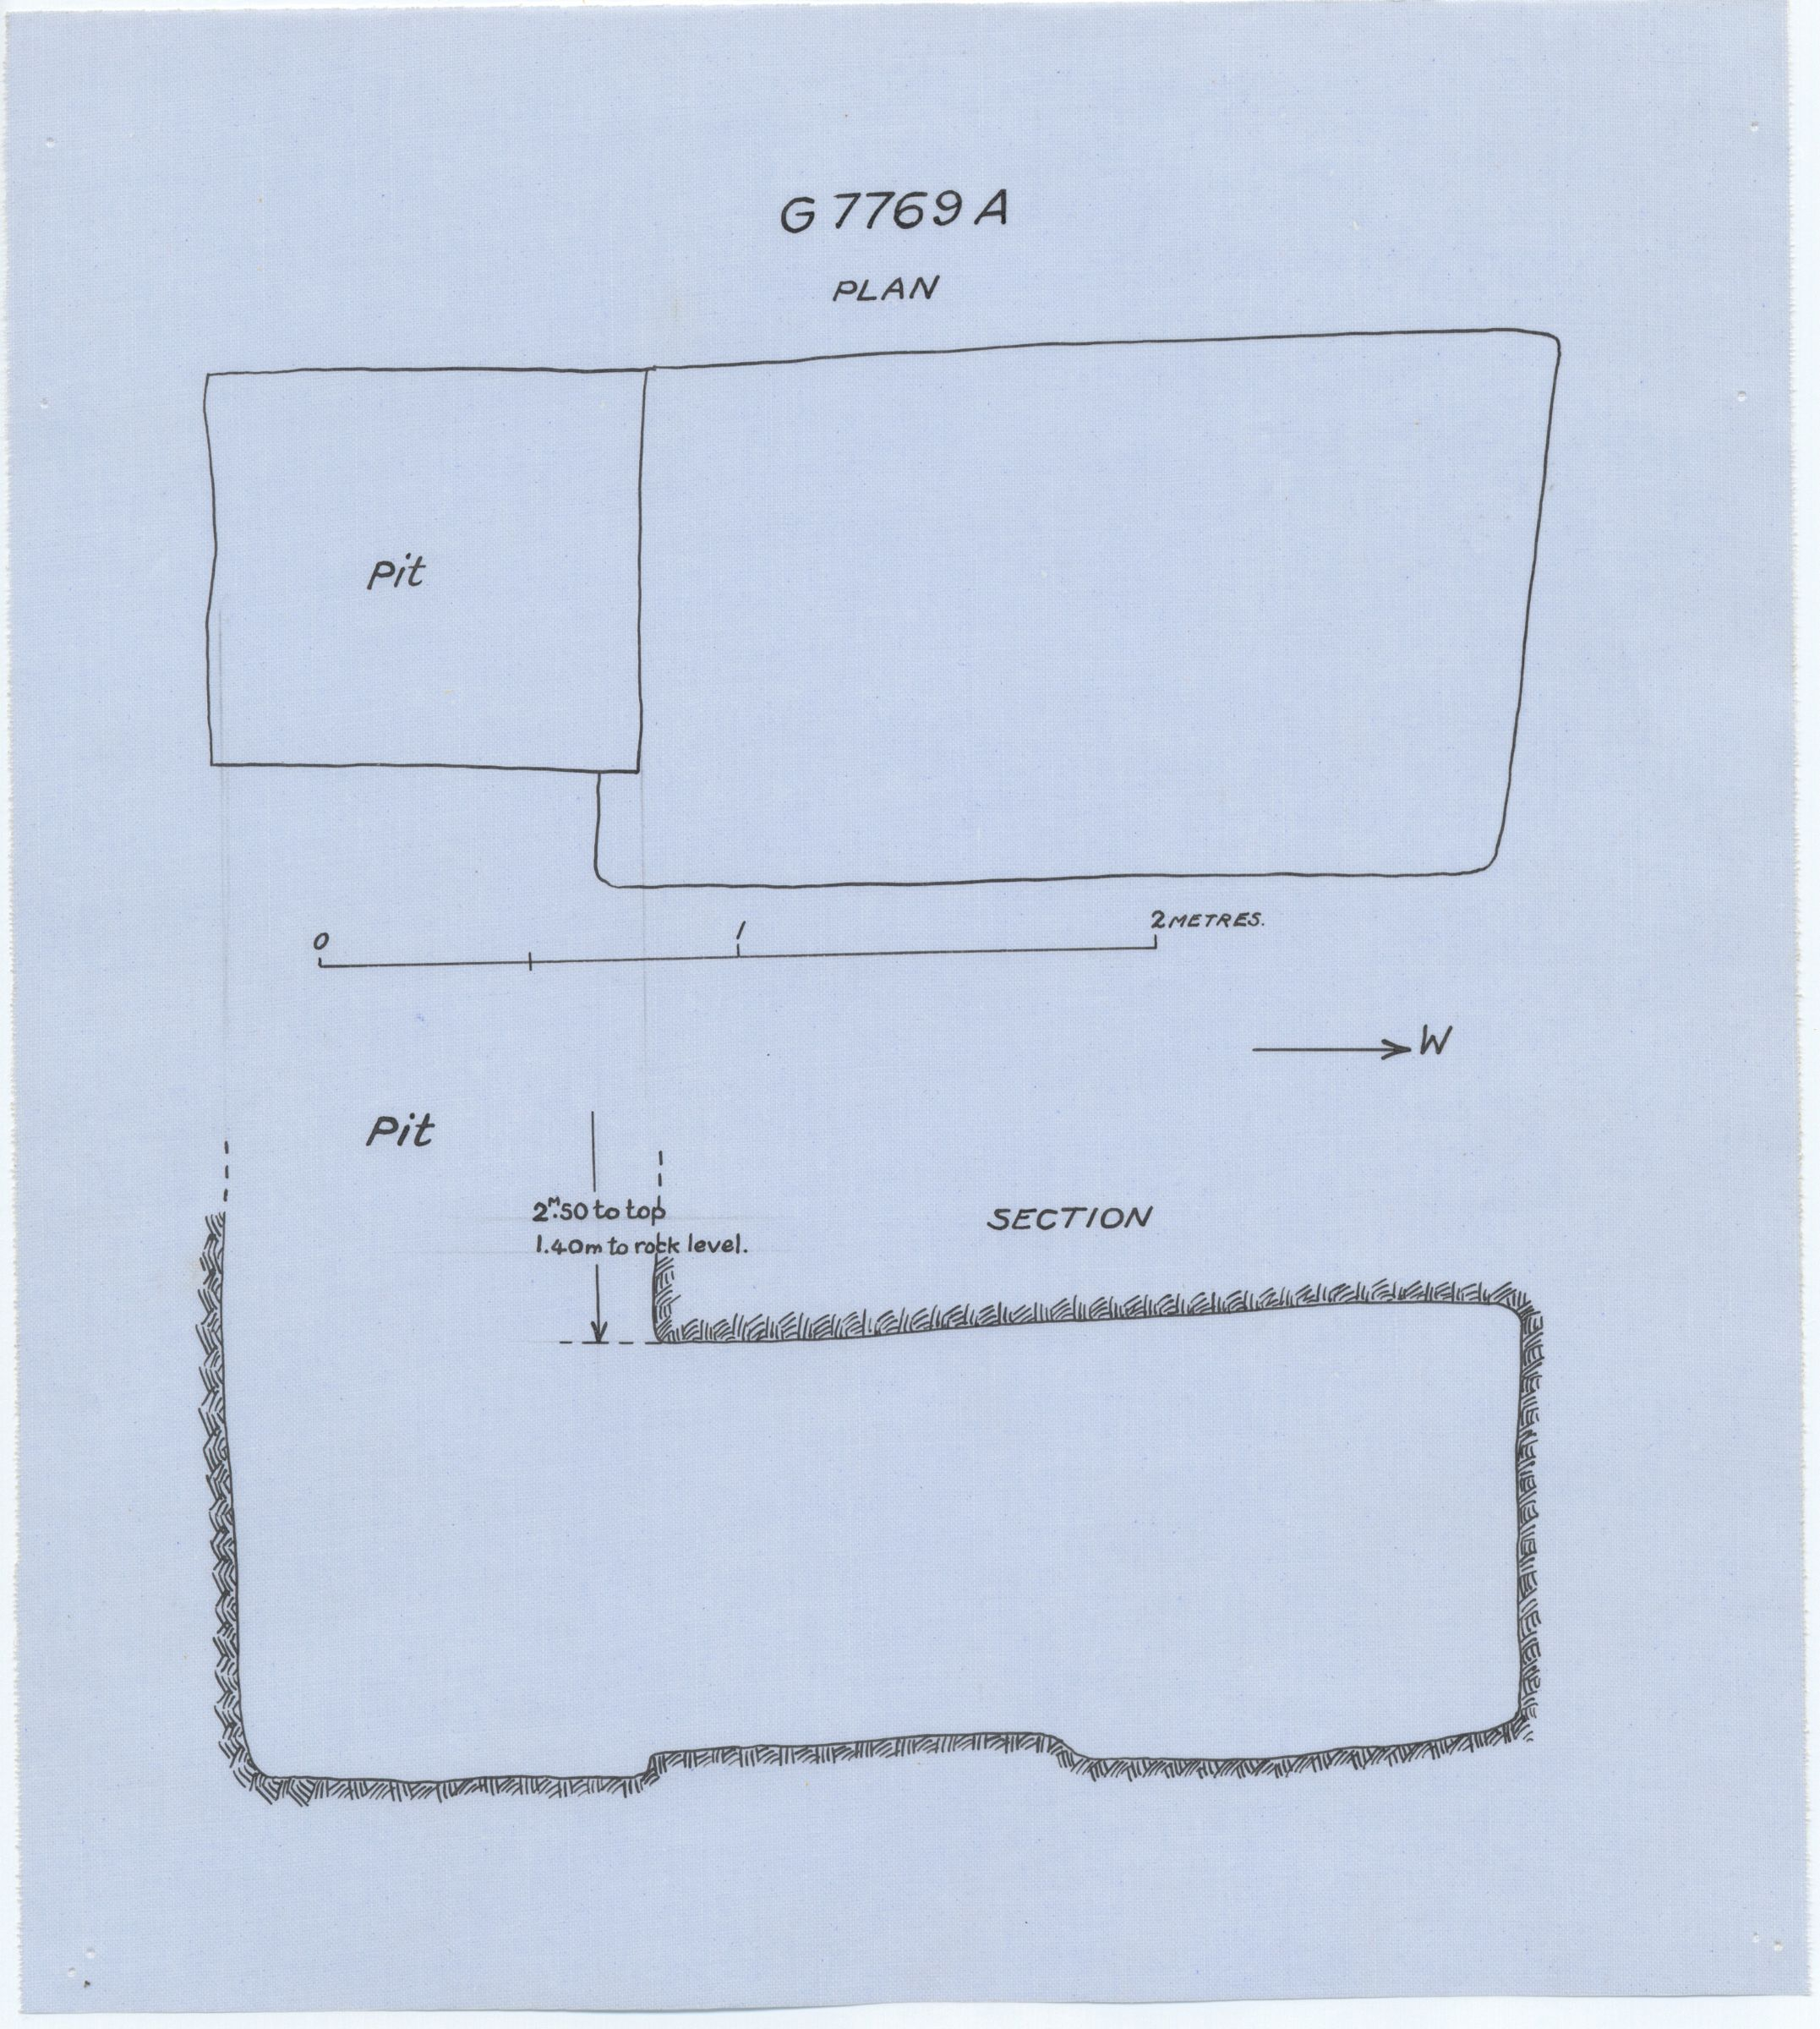 Maps and plans: G 7769, Shaft A